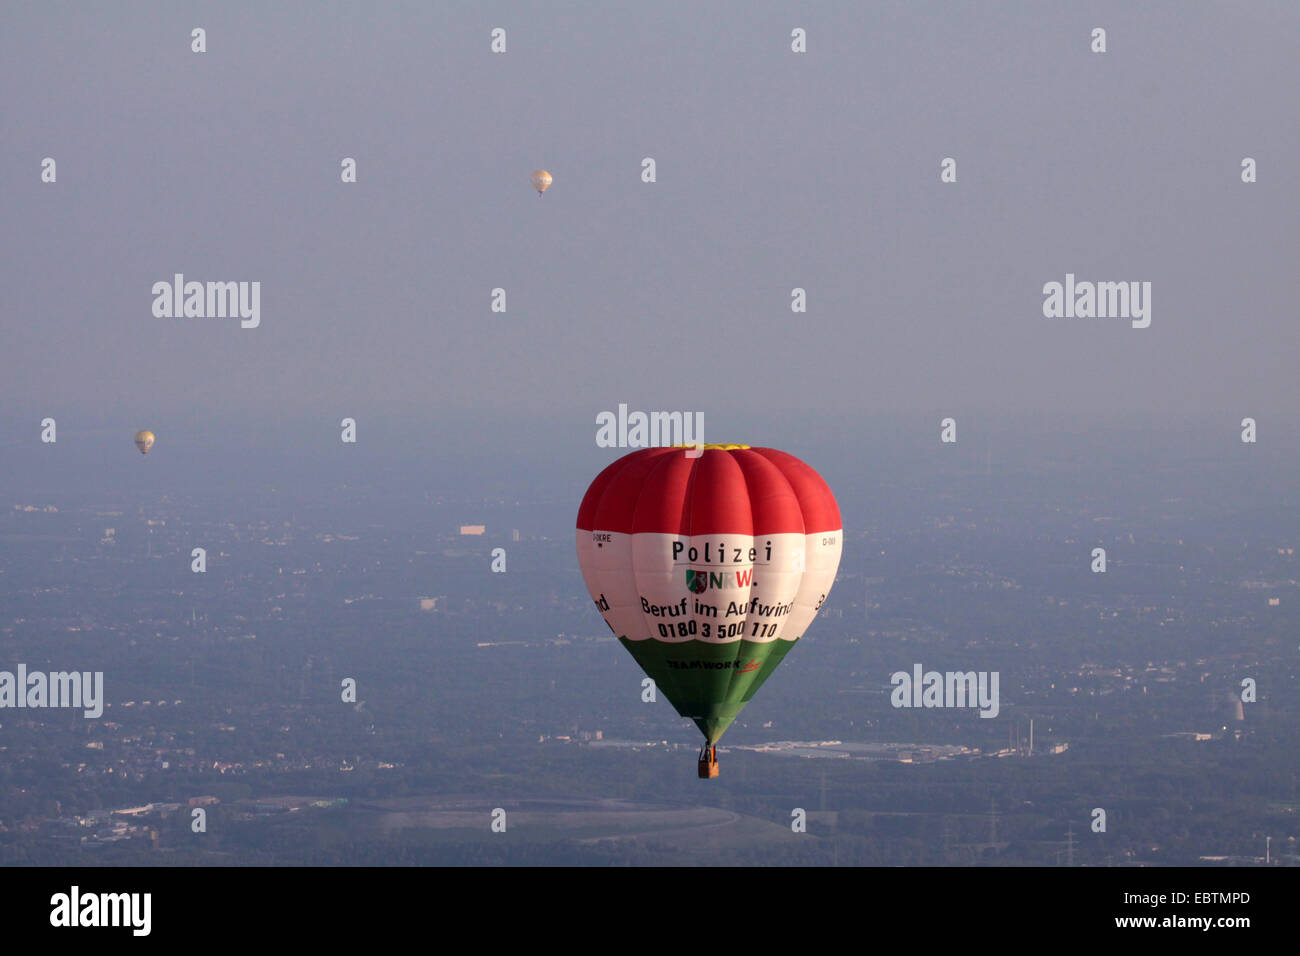 hot-air balloons over Ruhr Area, Germany, North Rhine-Westphalia, Bottrop - Stock Image